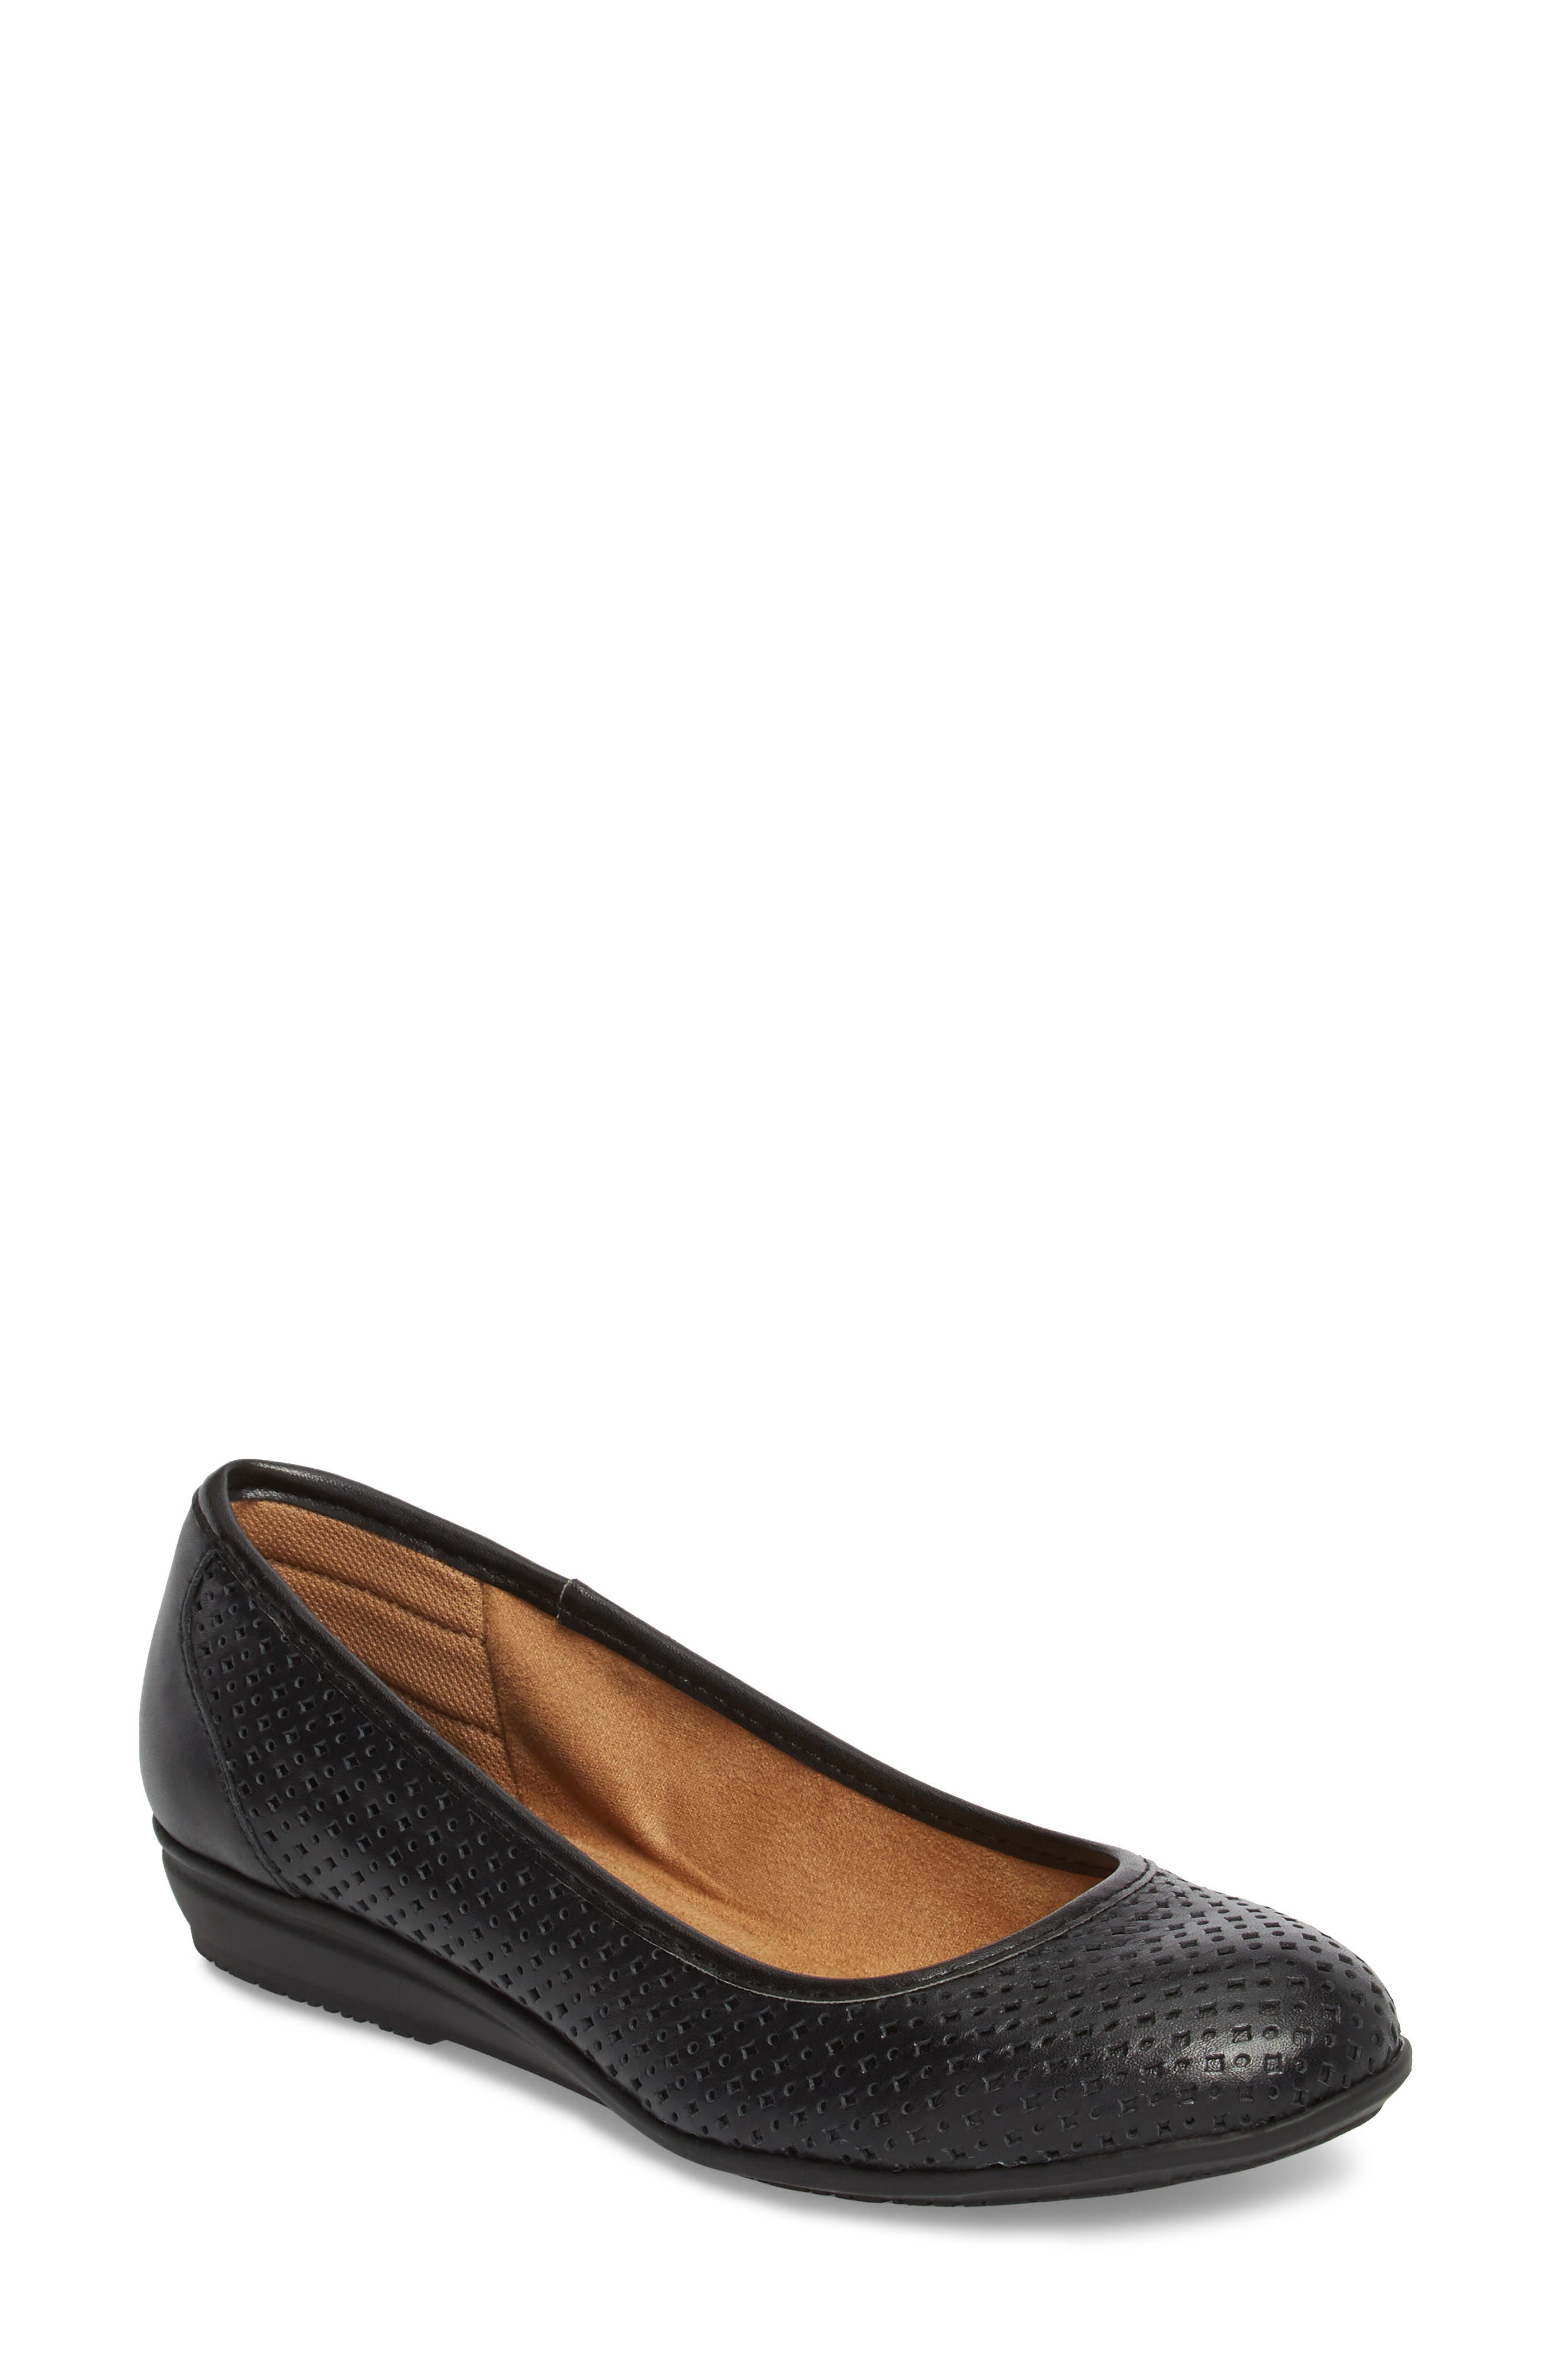 Electra Flat,                         Main,                         color, Black Leather